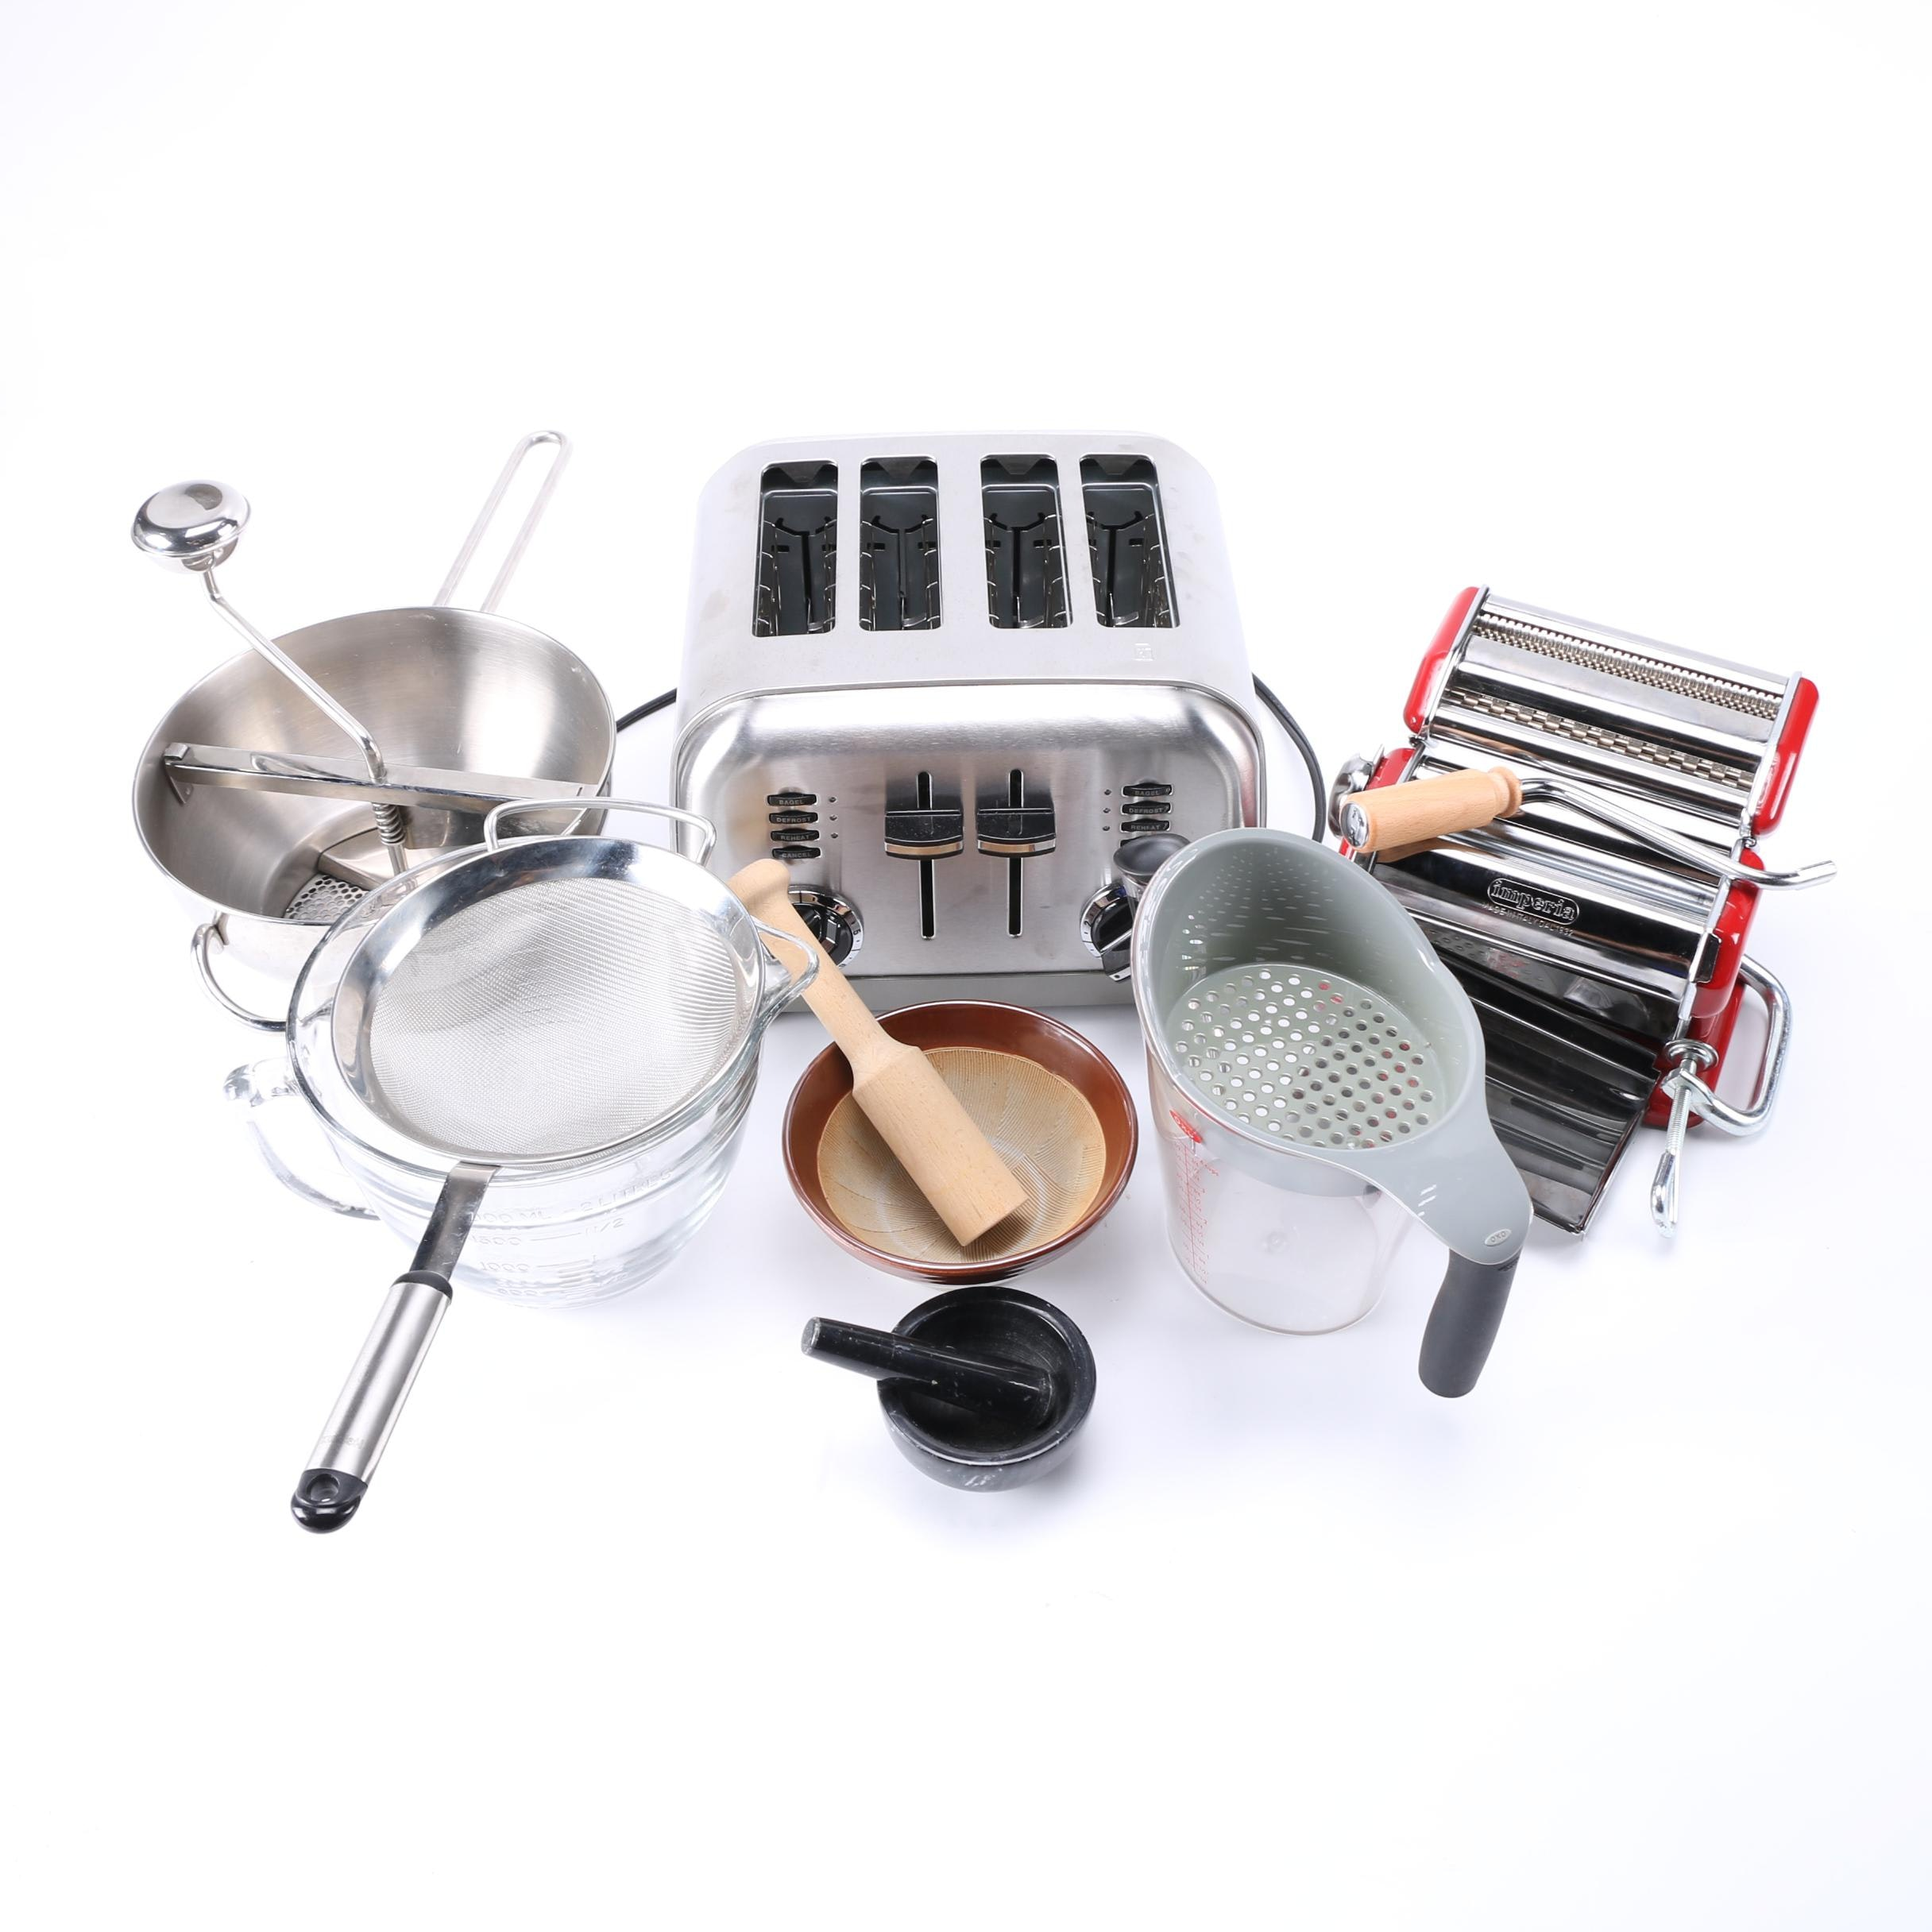 Kitchen Appliances and Cookware Featuring Cuisinart